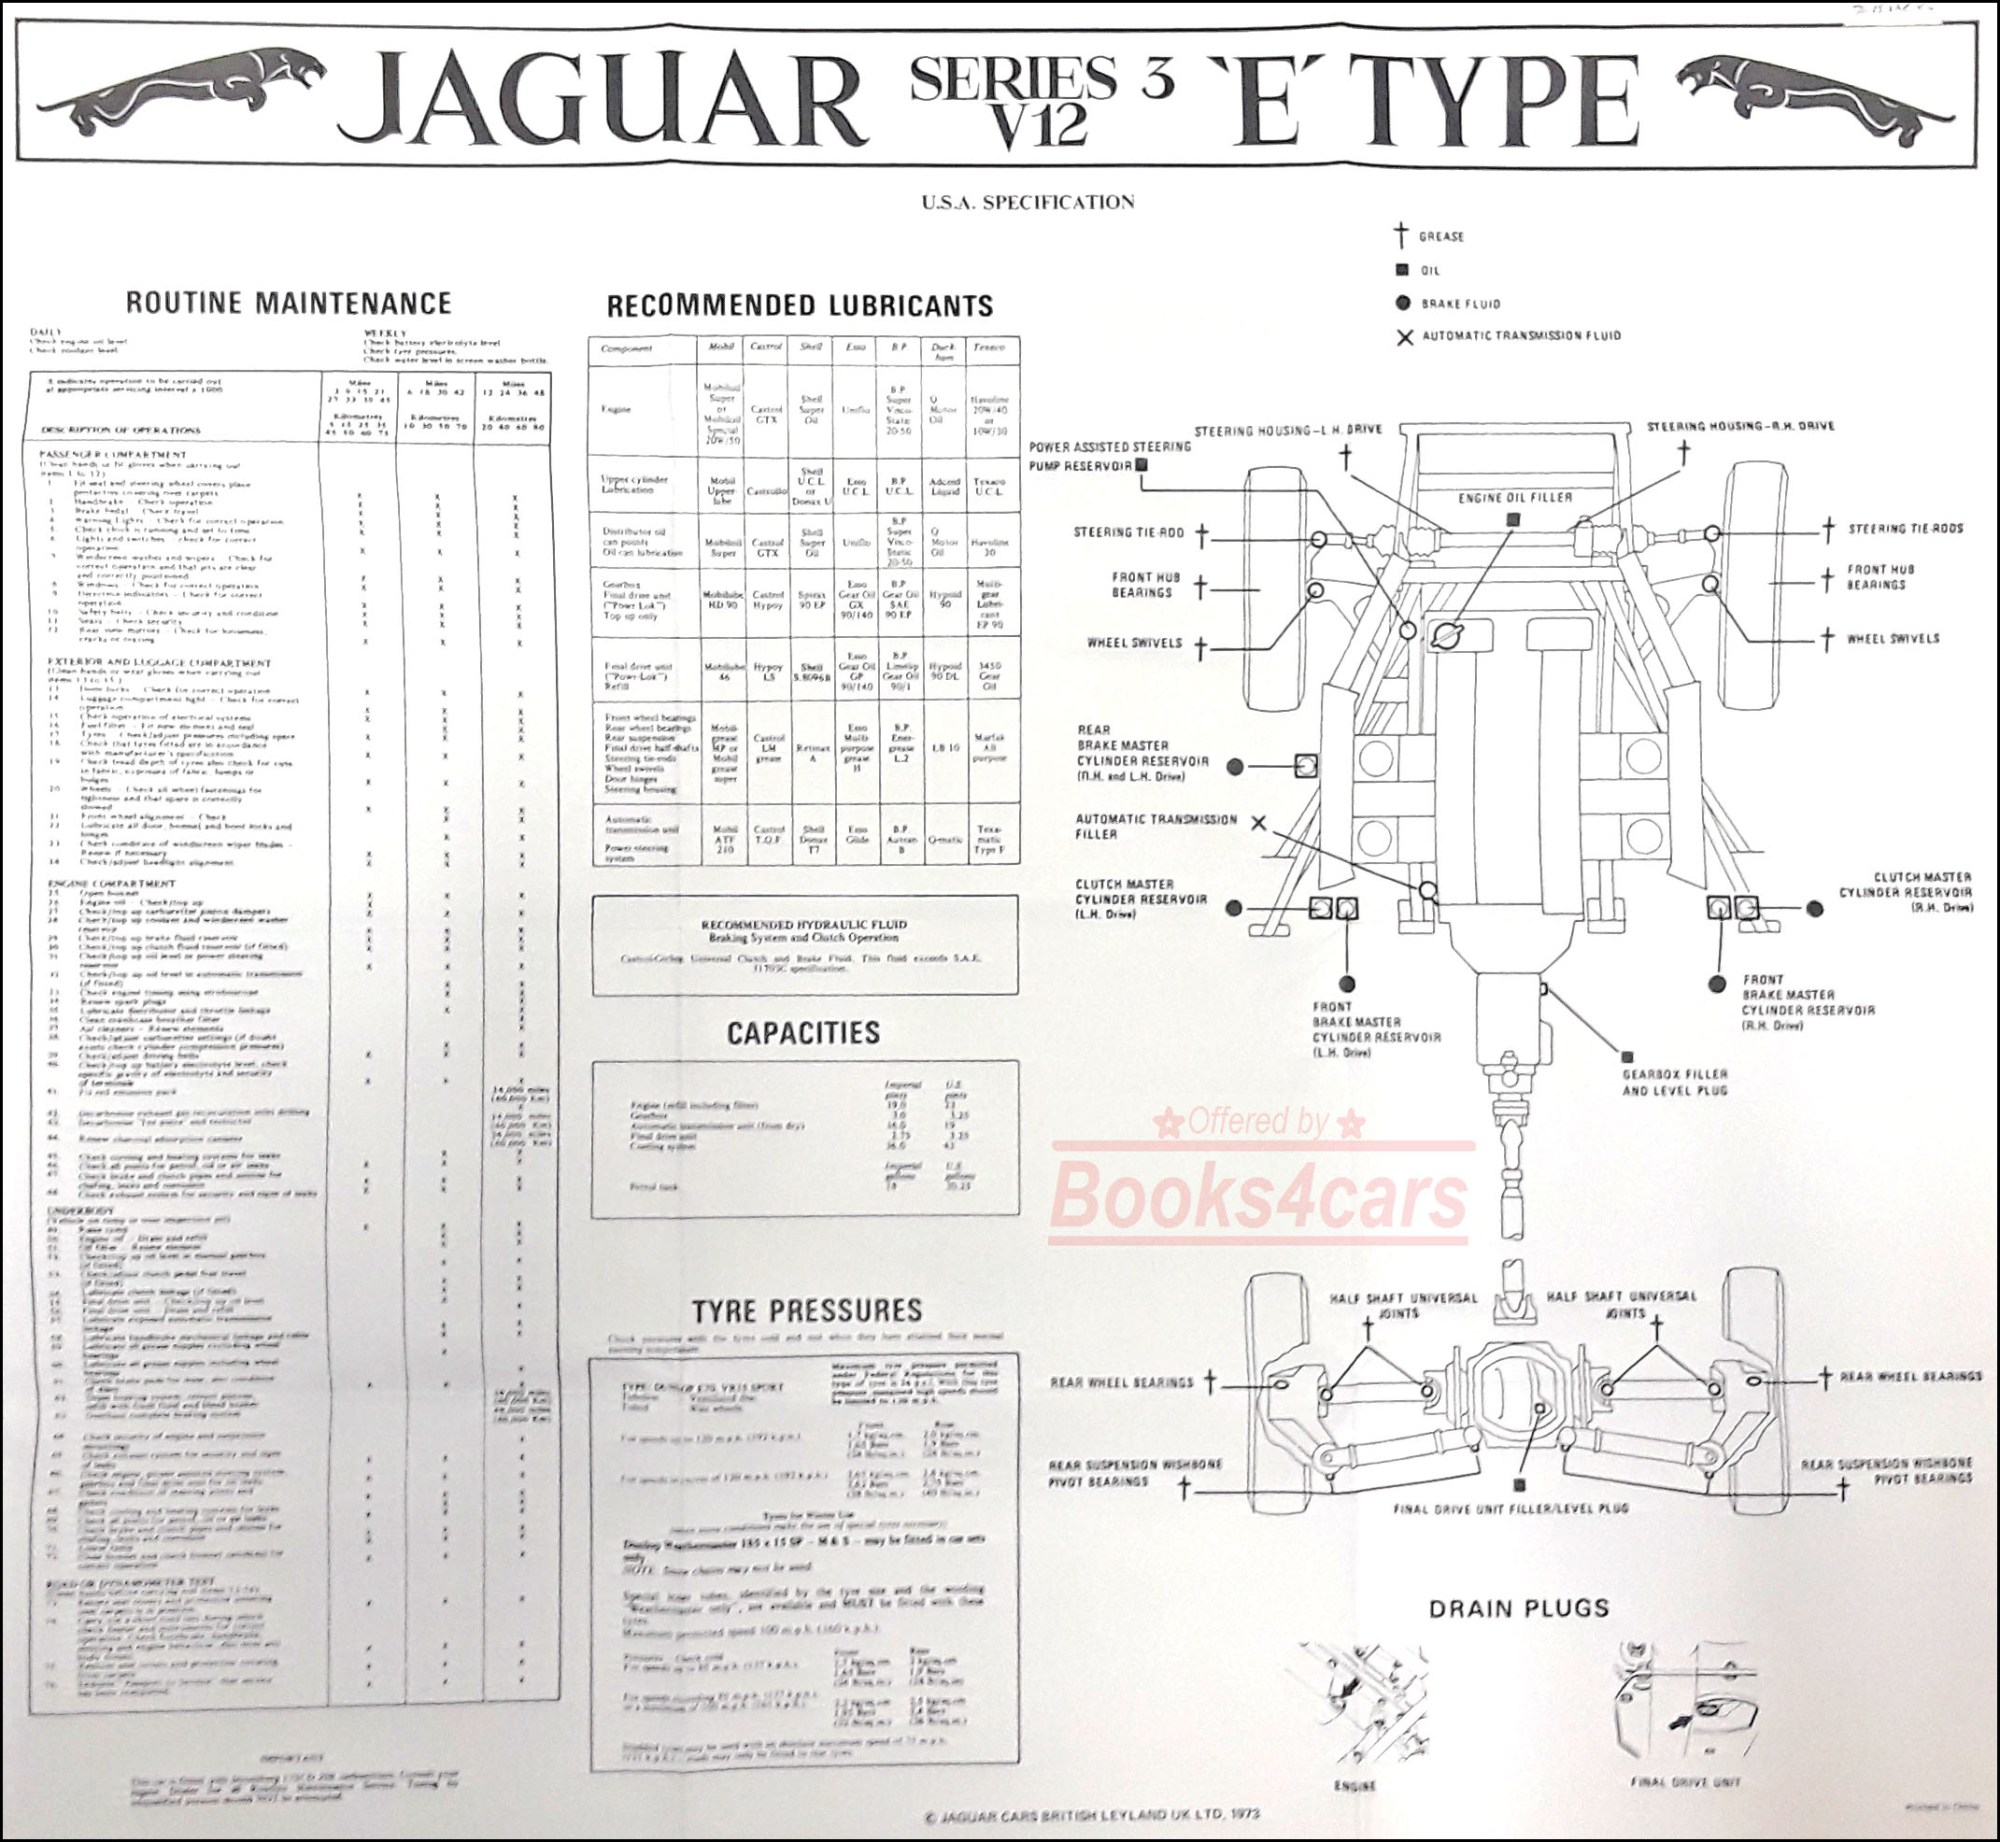 hight resolution of large 20 x20 double sided foldout wiring diagram by jaguar for all 1971 1975 s3 e type xke v12 models with detailed electrical diagram on one side and